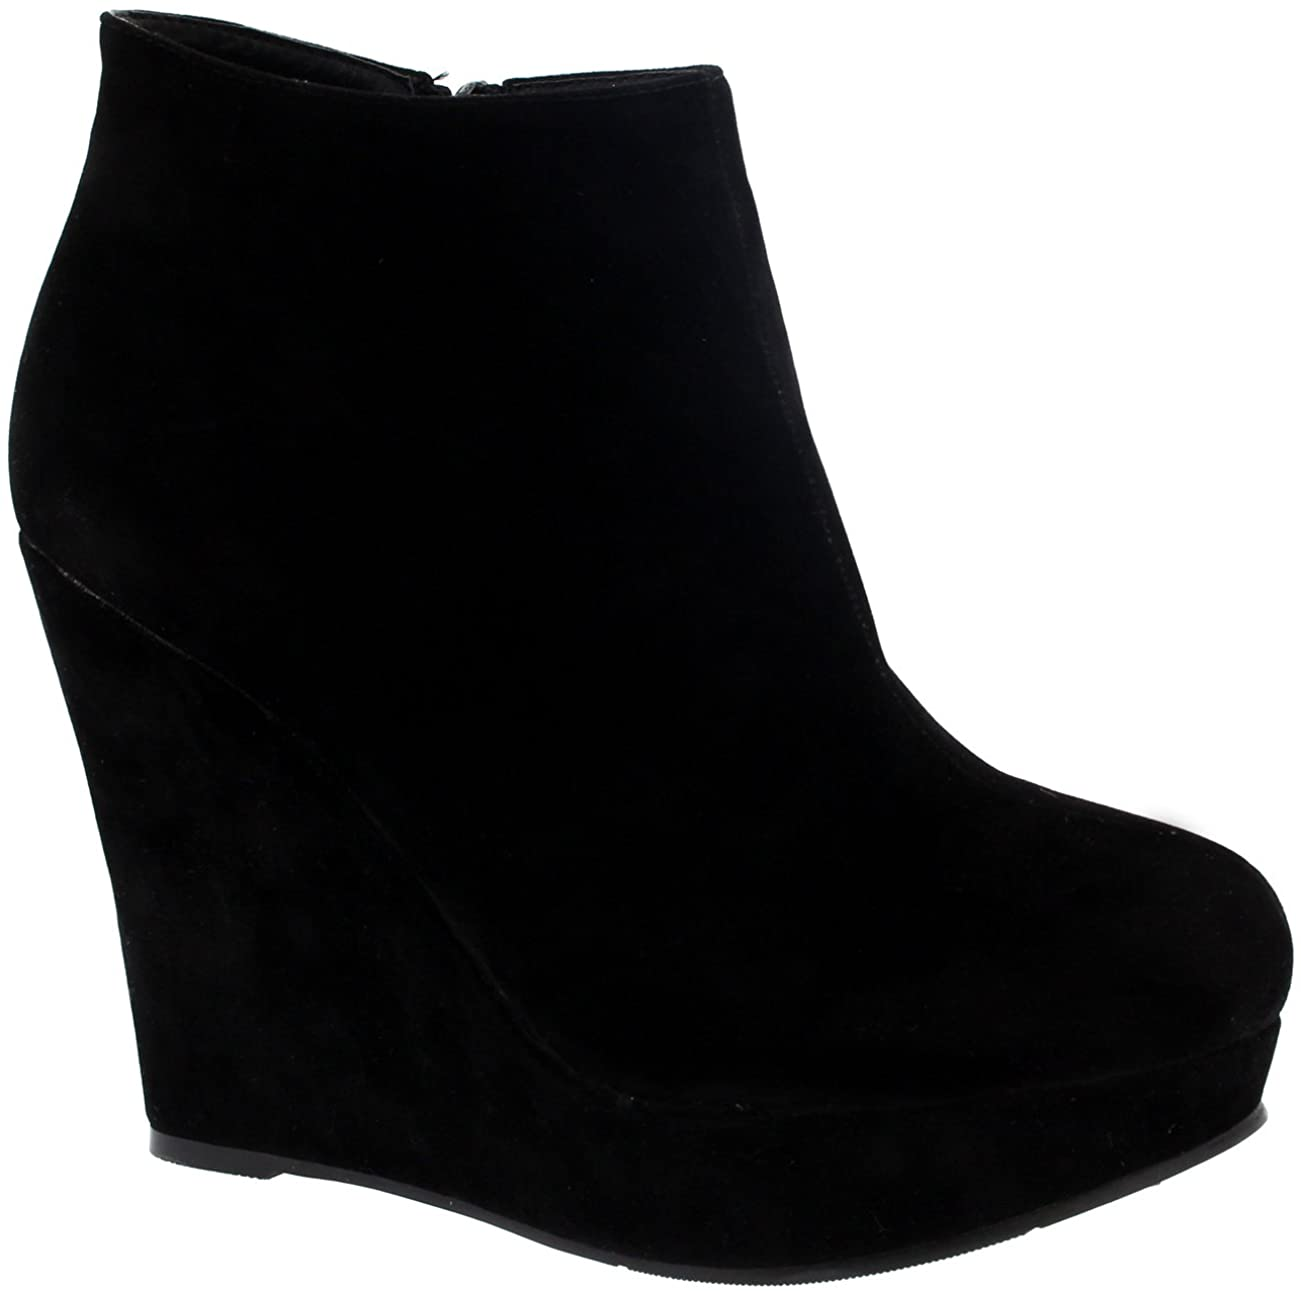 Womens High Wedge Heel Ankle Boot Platform Zipper Black Party Shoes Boots